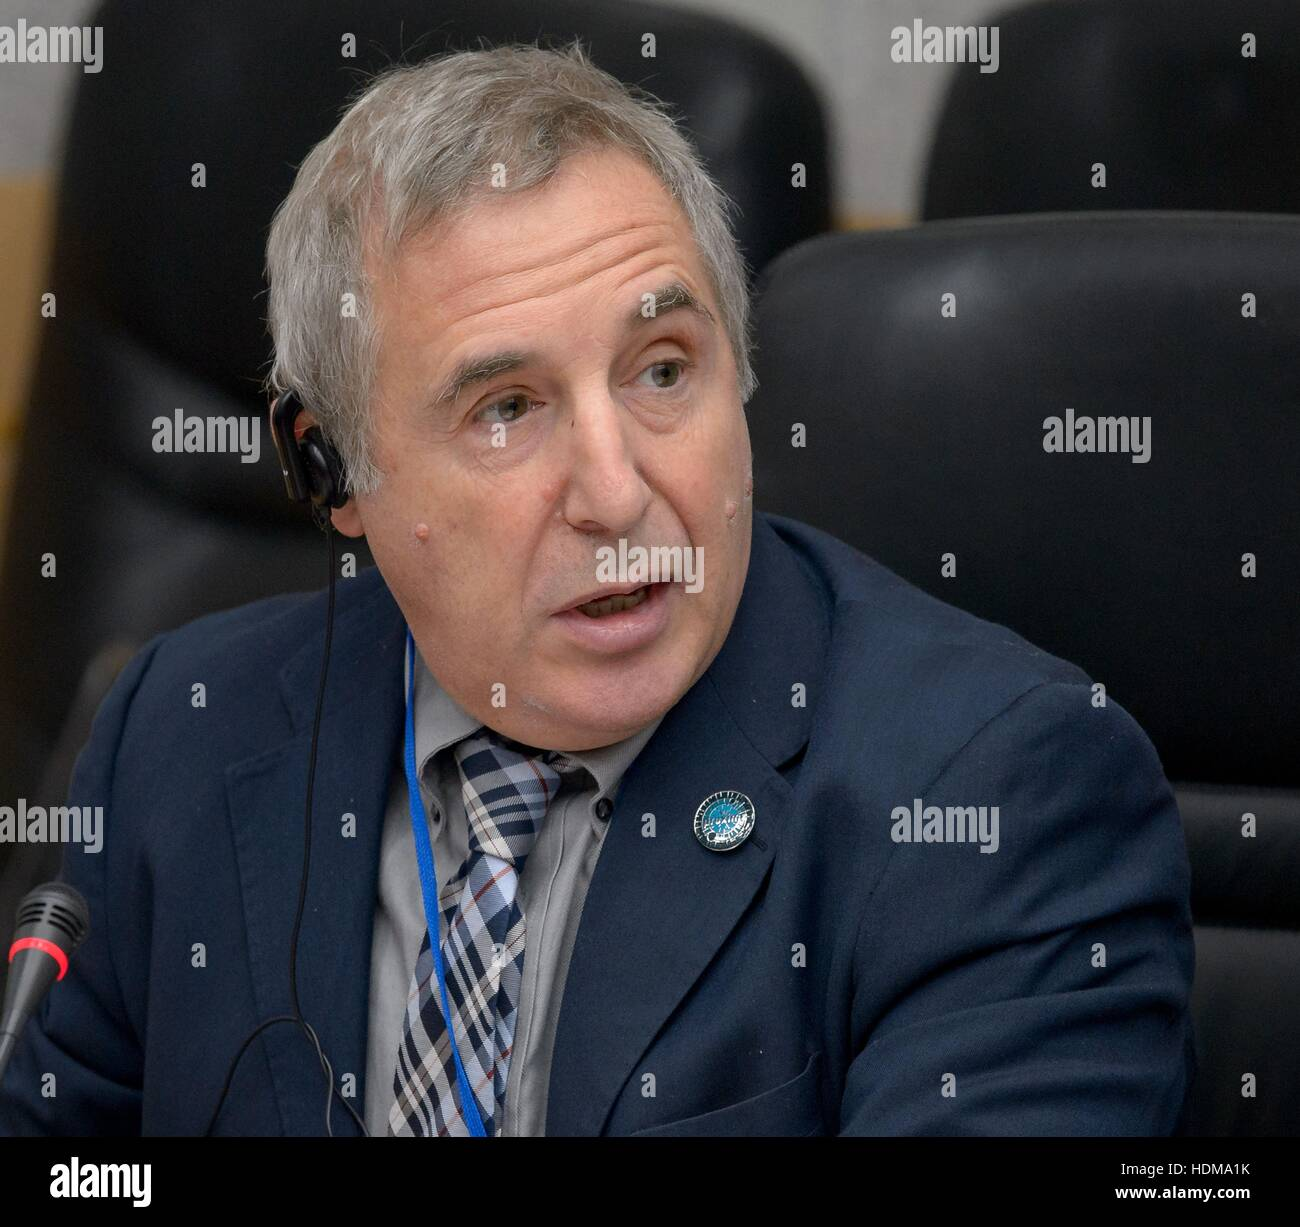 European Space Agency International Space Station Program Manager Bernardo Patti speaks during the State Commission - Stock Image